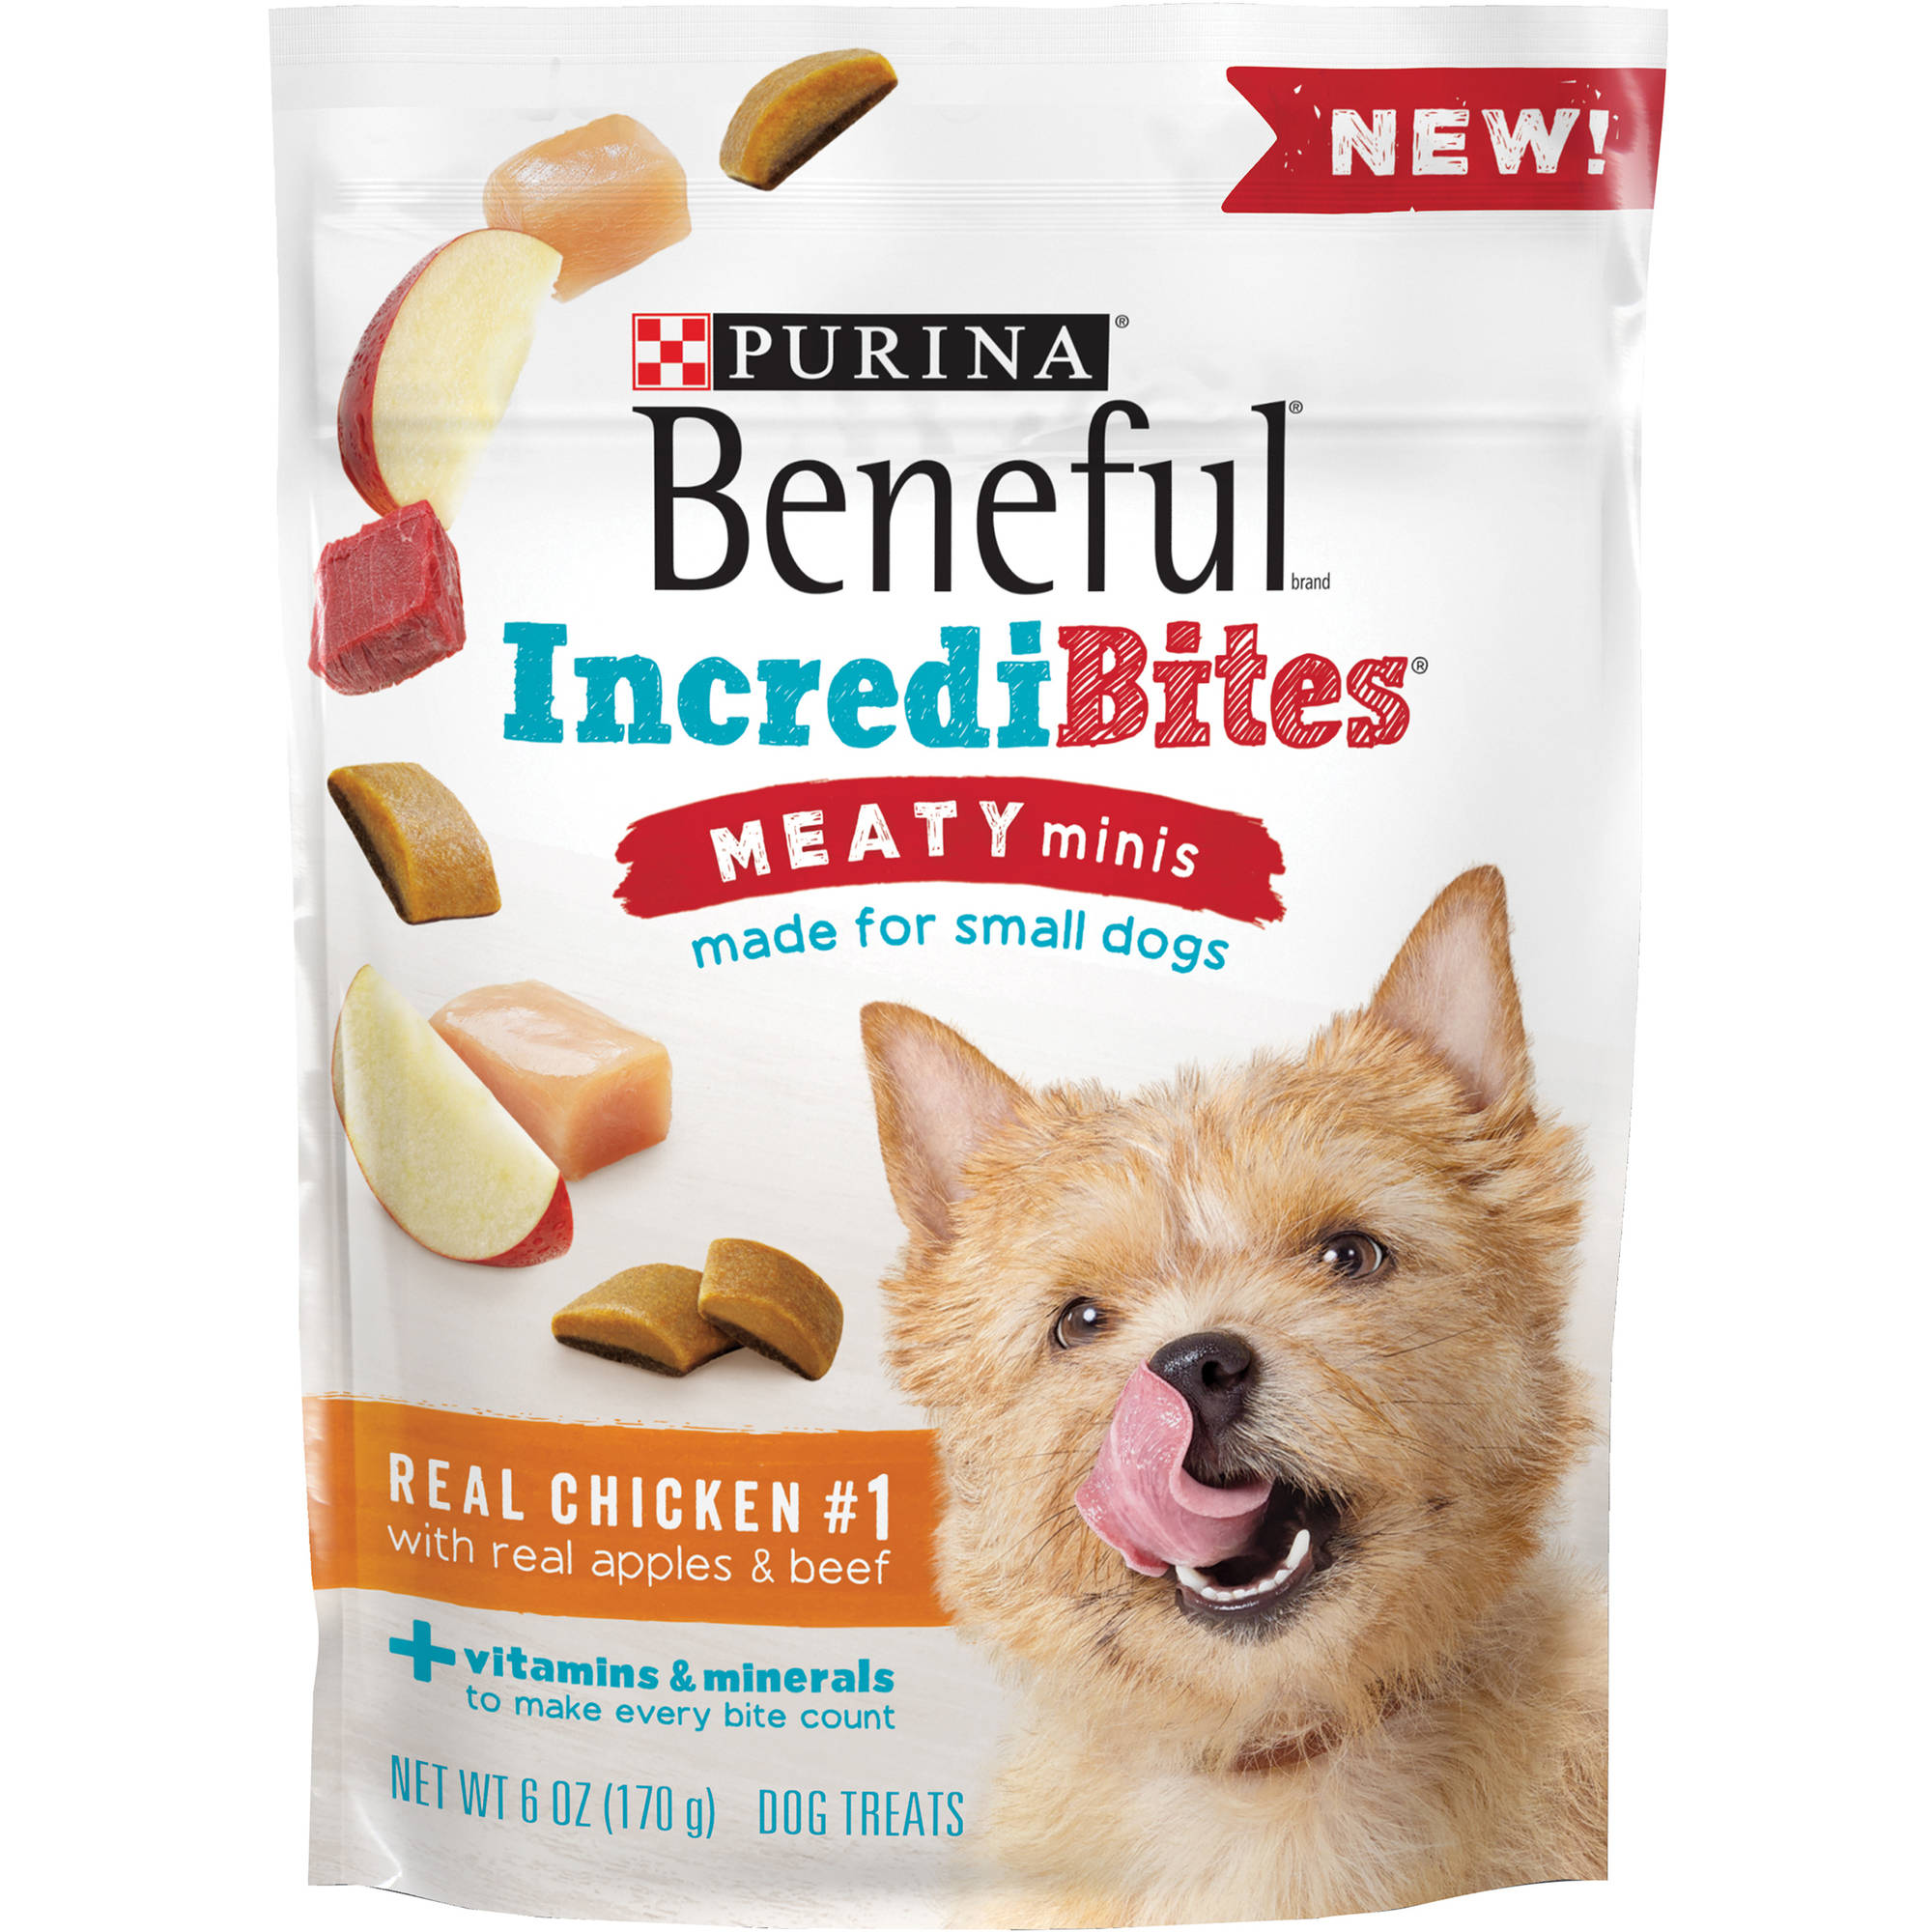 Purina Beneful IncrediBites Meaty Minis Real Chicken With Real Apples & Beef Dog Treats 6 oz. Pouch by Nestl�� Purina PetCare Company